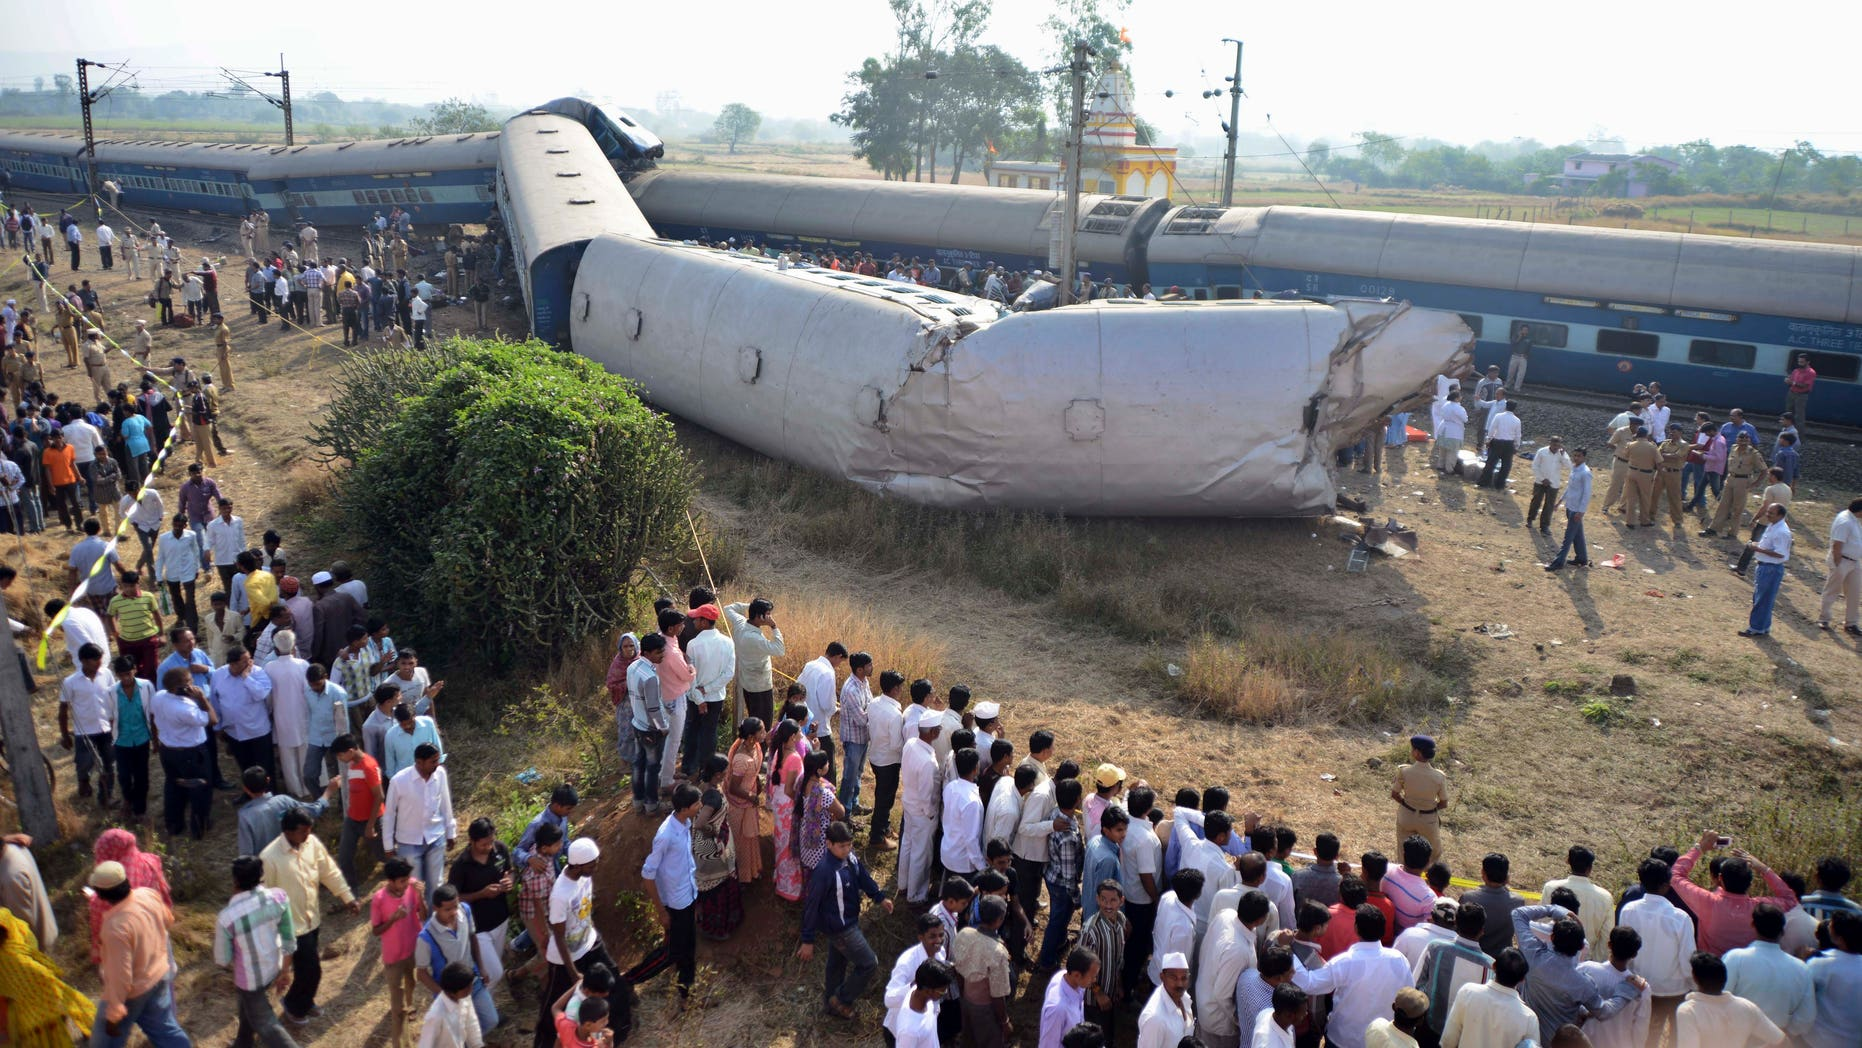 Indian people gather at the site of a train accident near Nashik, 165 kilometers (100 miles) north of Mumbai, India, Friday, Nov. 15, 2013. Police say the passenger train derailed in western India, killing at least two people and injuring another 25. The cause of the accident was not immediately known. (AP Photo)